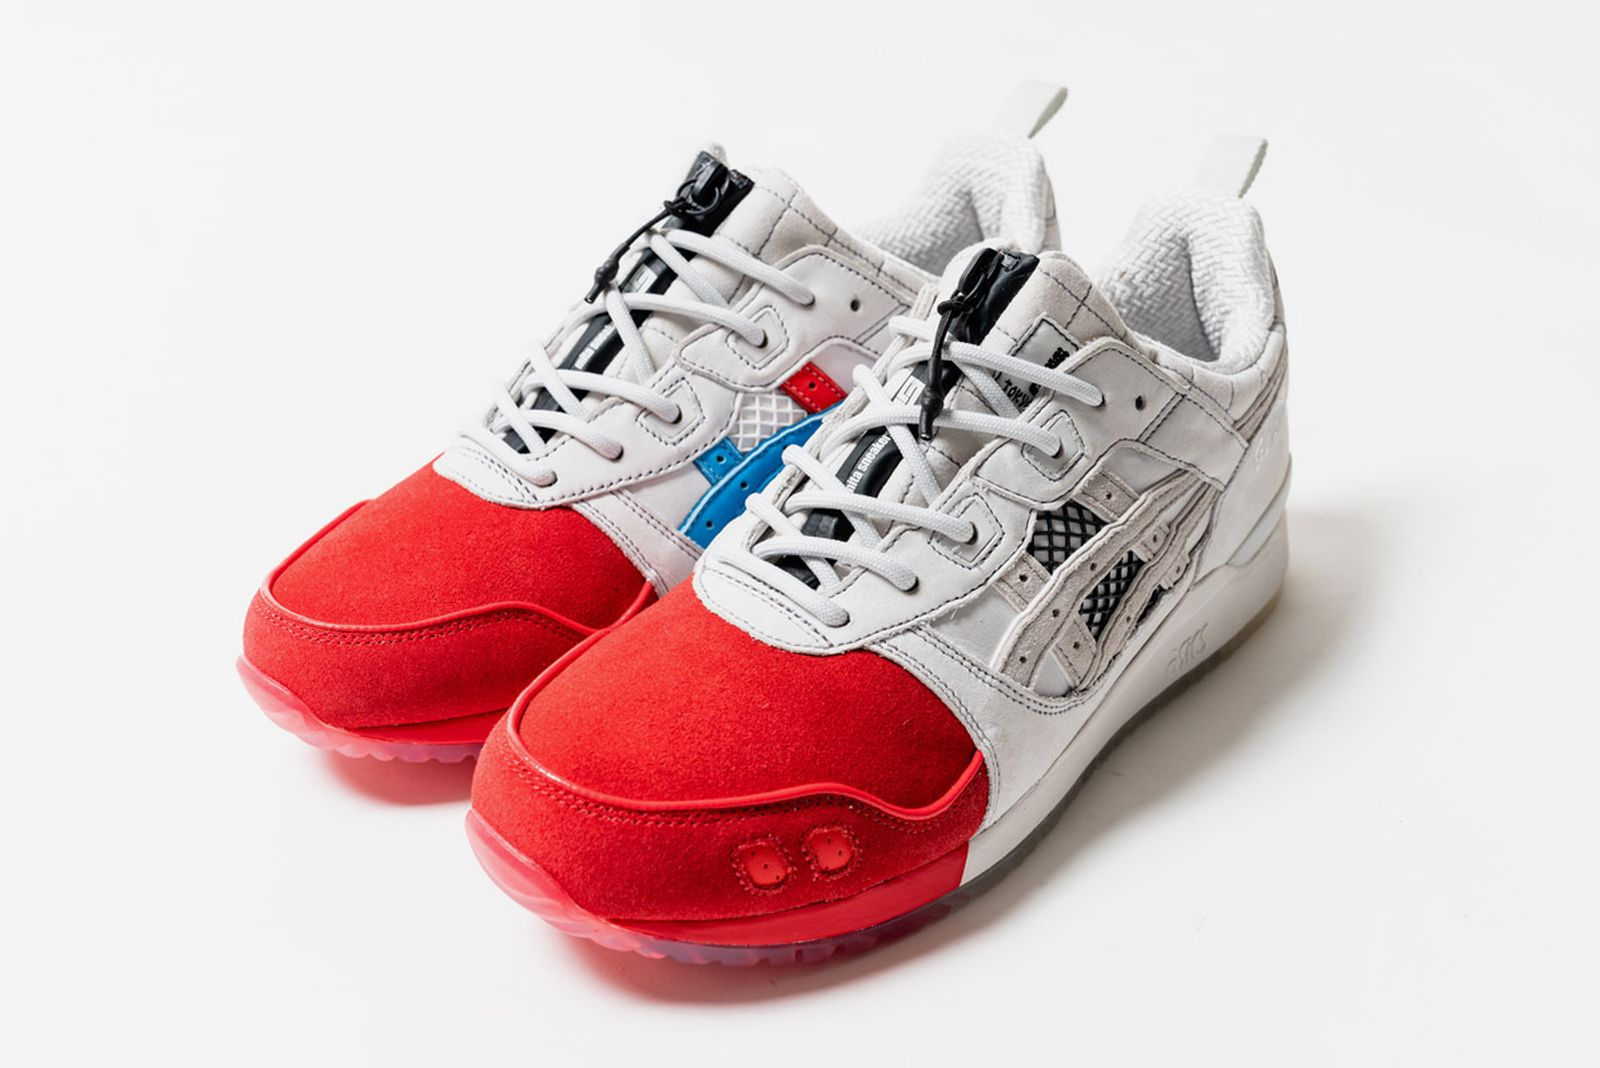 asics-mita-sneakers-gel-lyte-iii-collab-interview-04